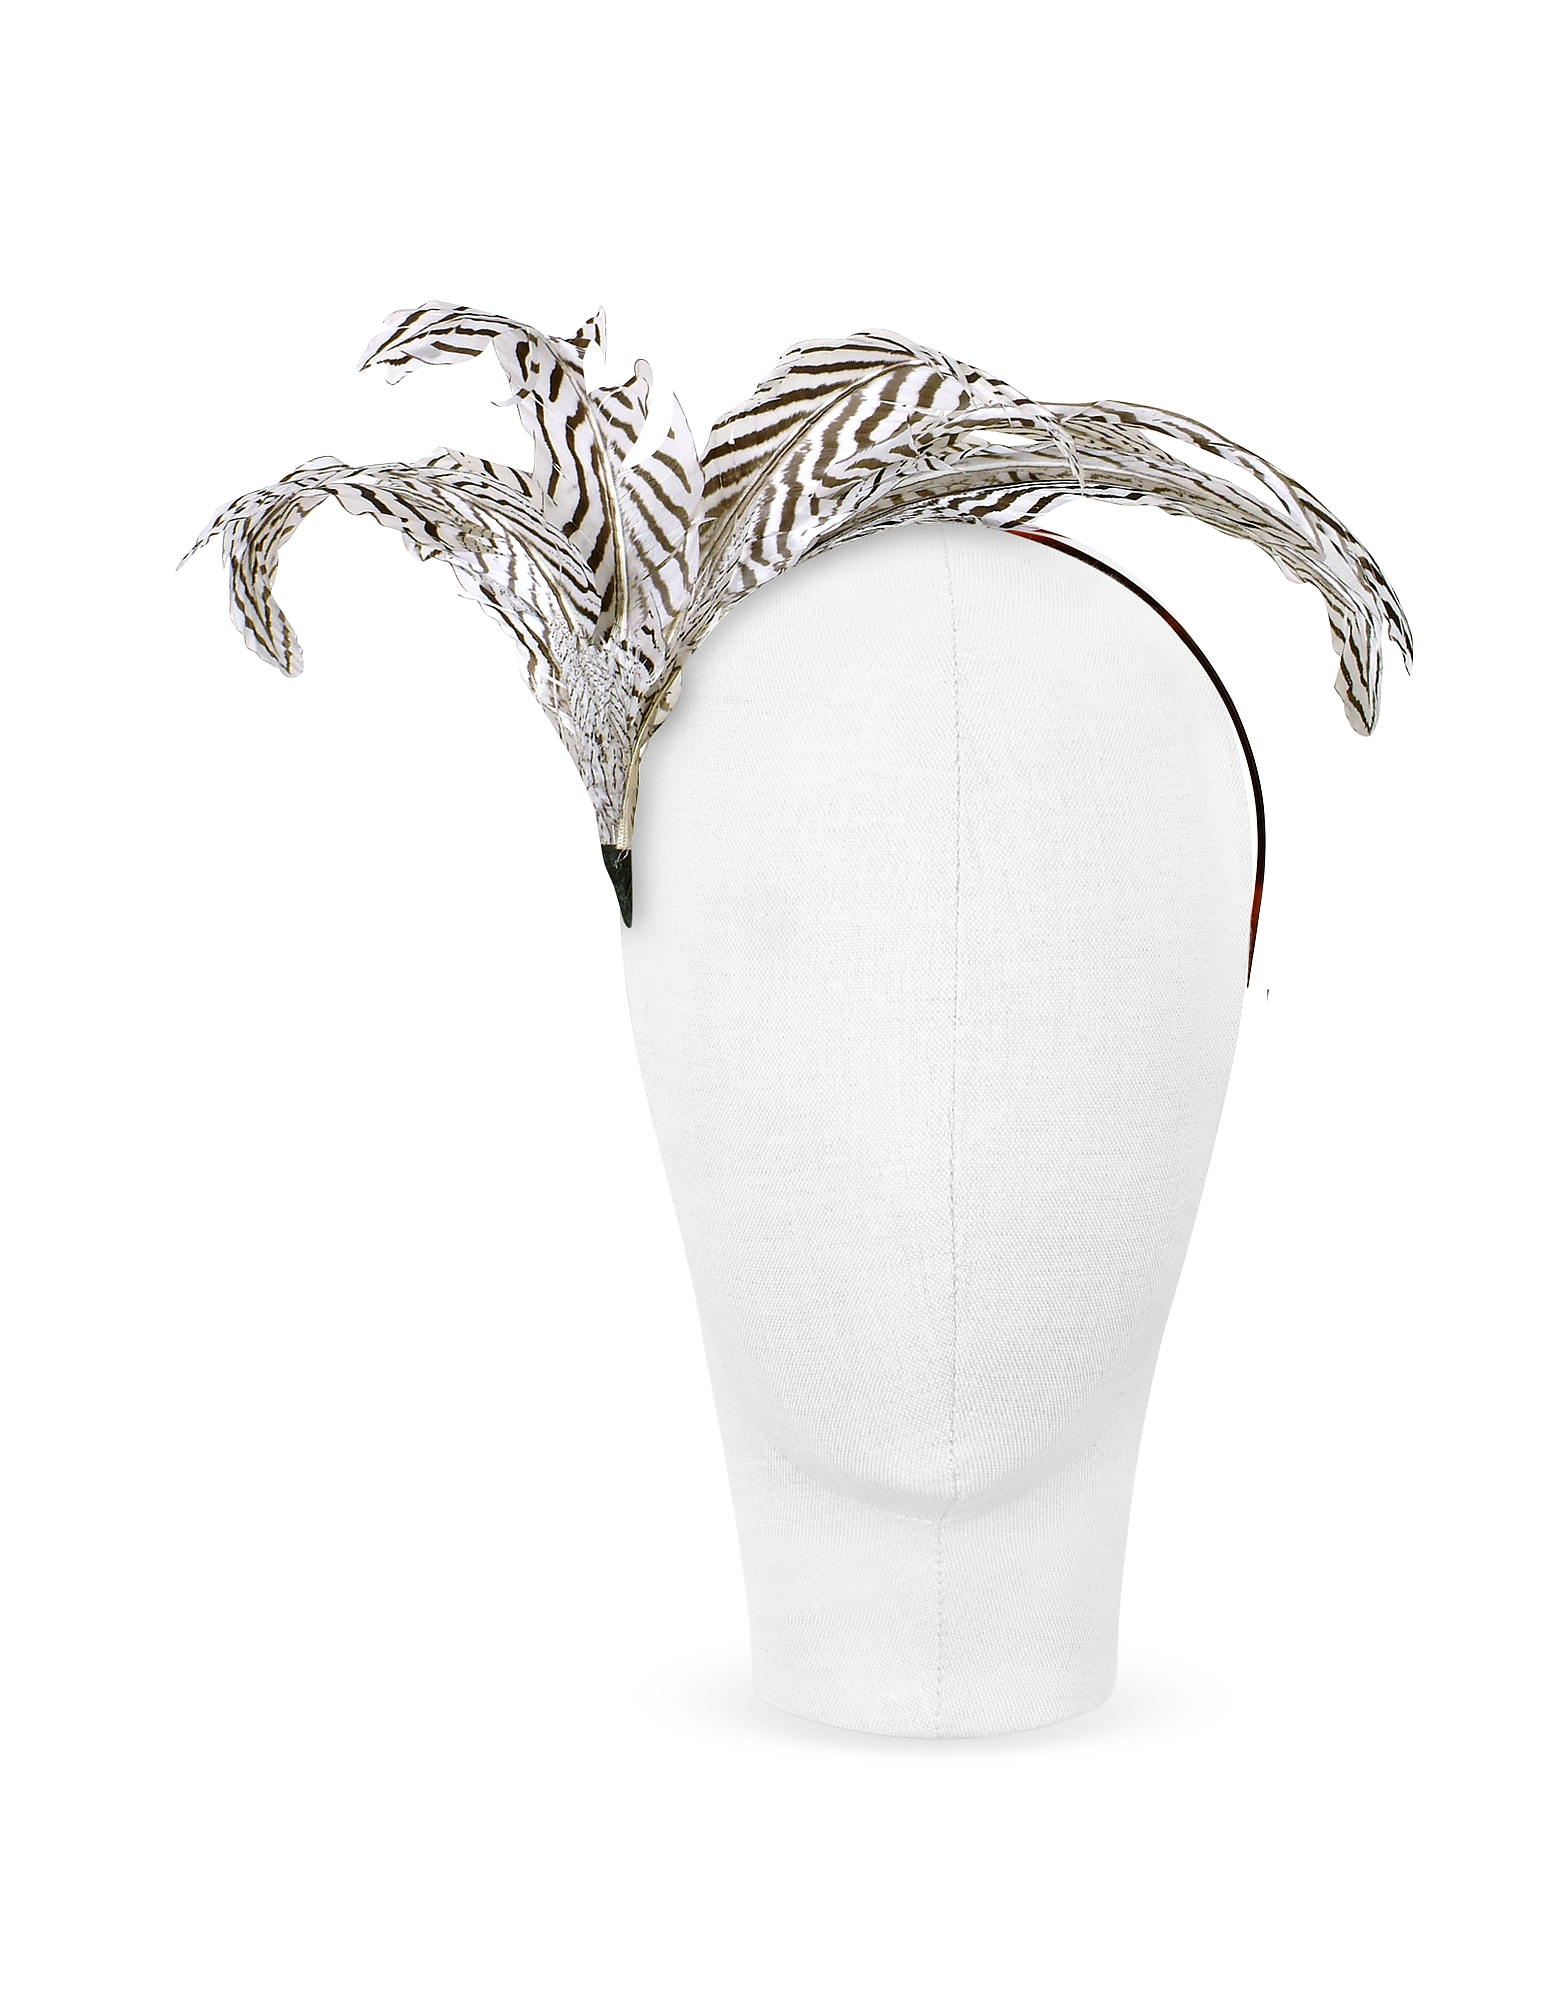 Beverly - Black and White Feather Flower Headband